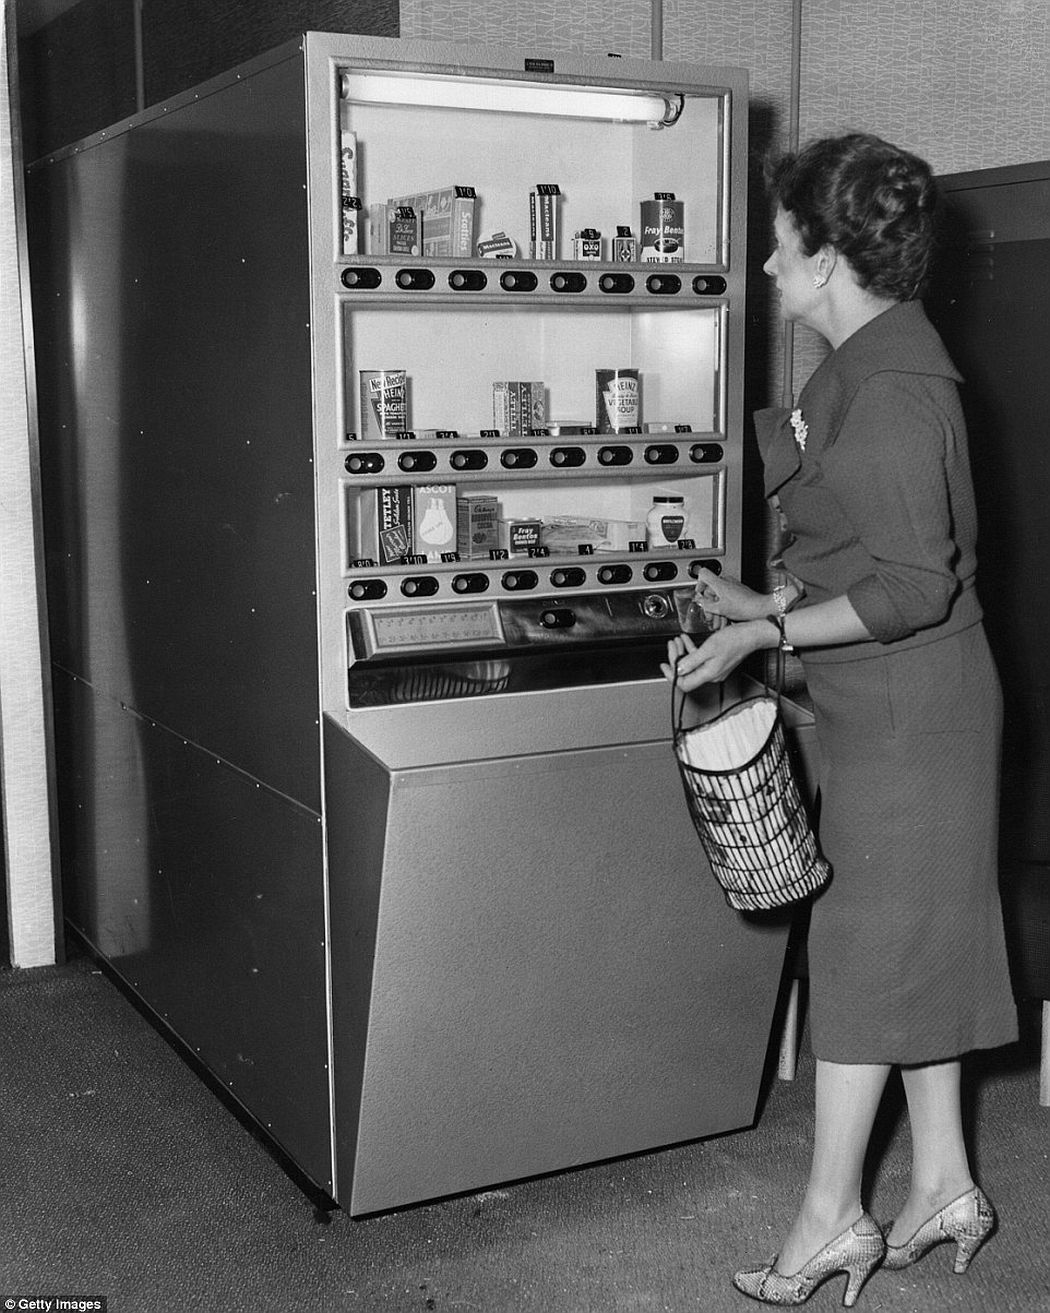 Shoppers could pick up household essentials from this machine. Goods available include Heinz Spaghetti and vegetable soup, Tetley tea, Sugar Puffs, Fray Bentos, Oxo Cubes, soup, light bulbs, mayonnaise and cocoa - all of which could be placed in housewives' own bags, ca. 1960s.